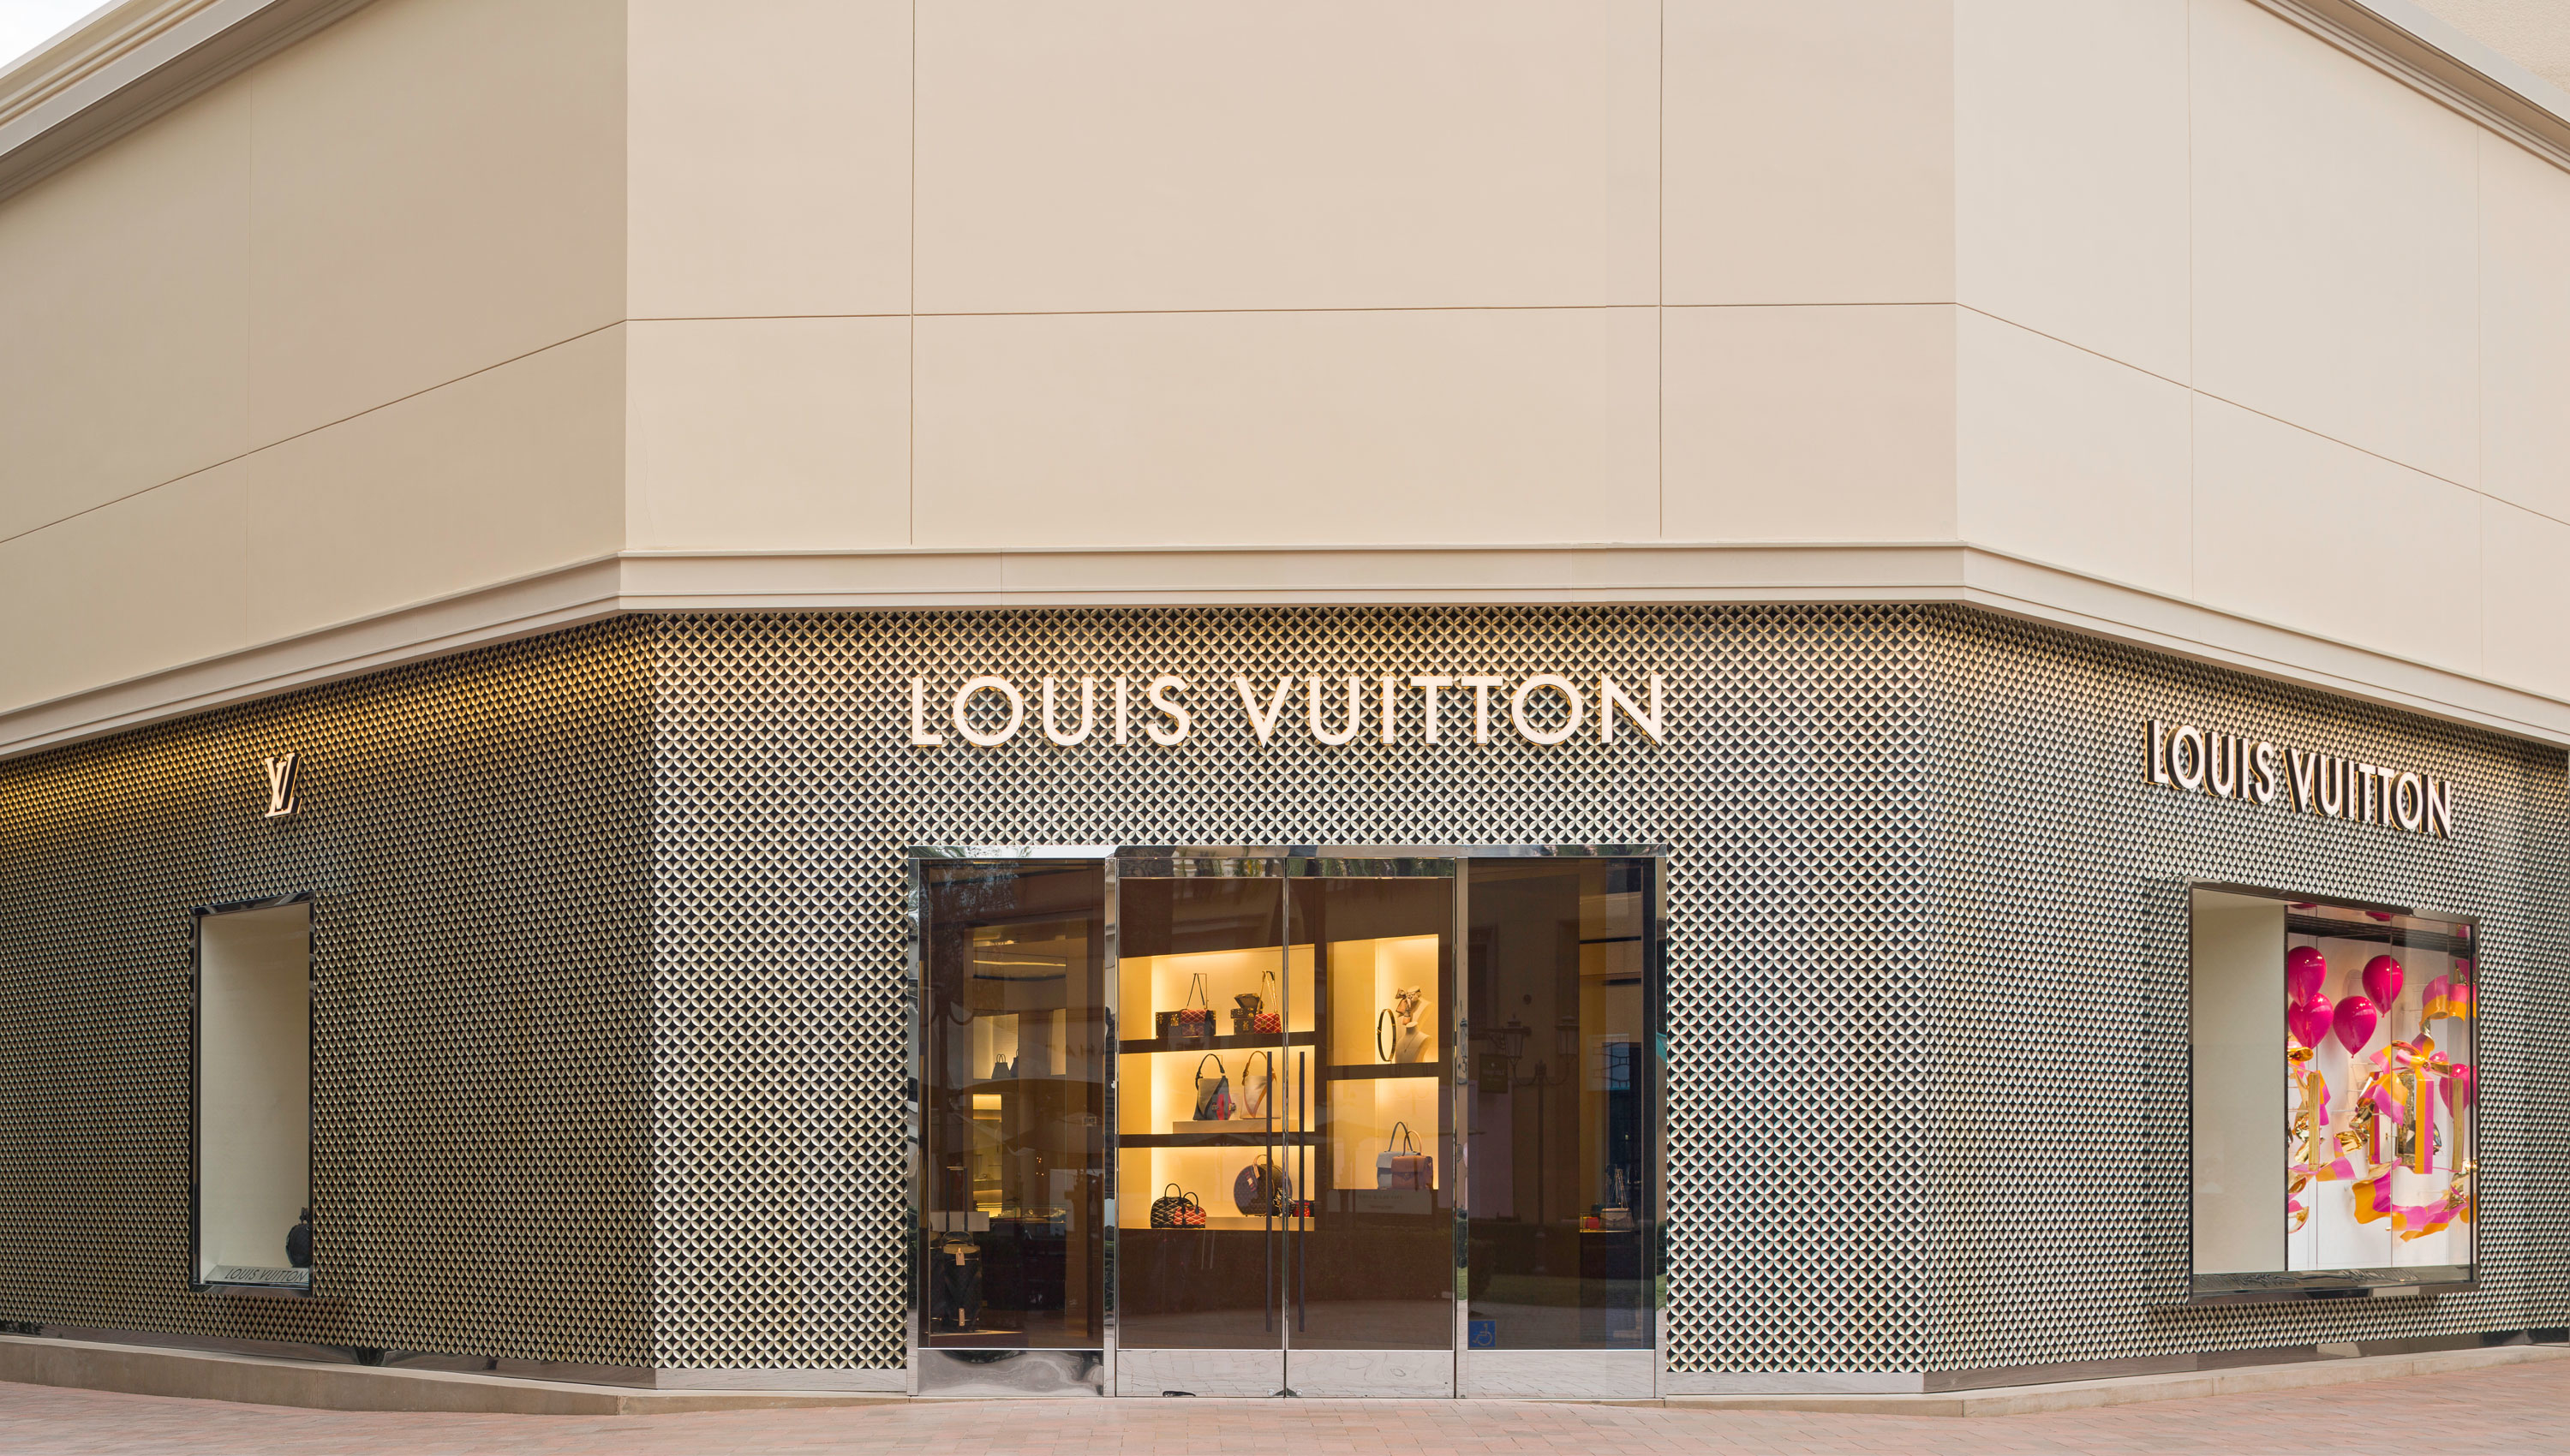 Louis Vuitton Newport Beach Fashion Island Neiman Marcus 601 Center Drive Ca Leather Goods Mapquest